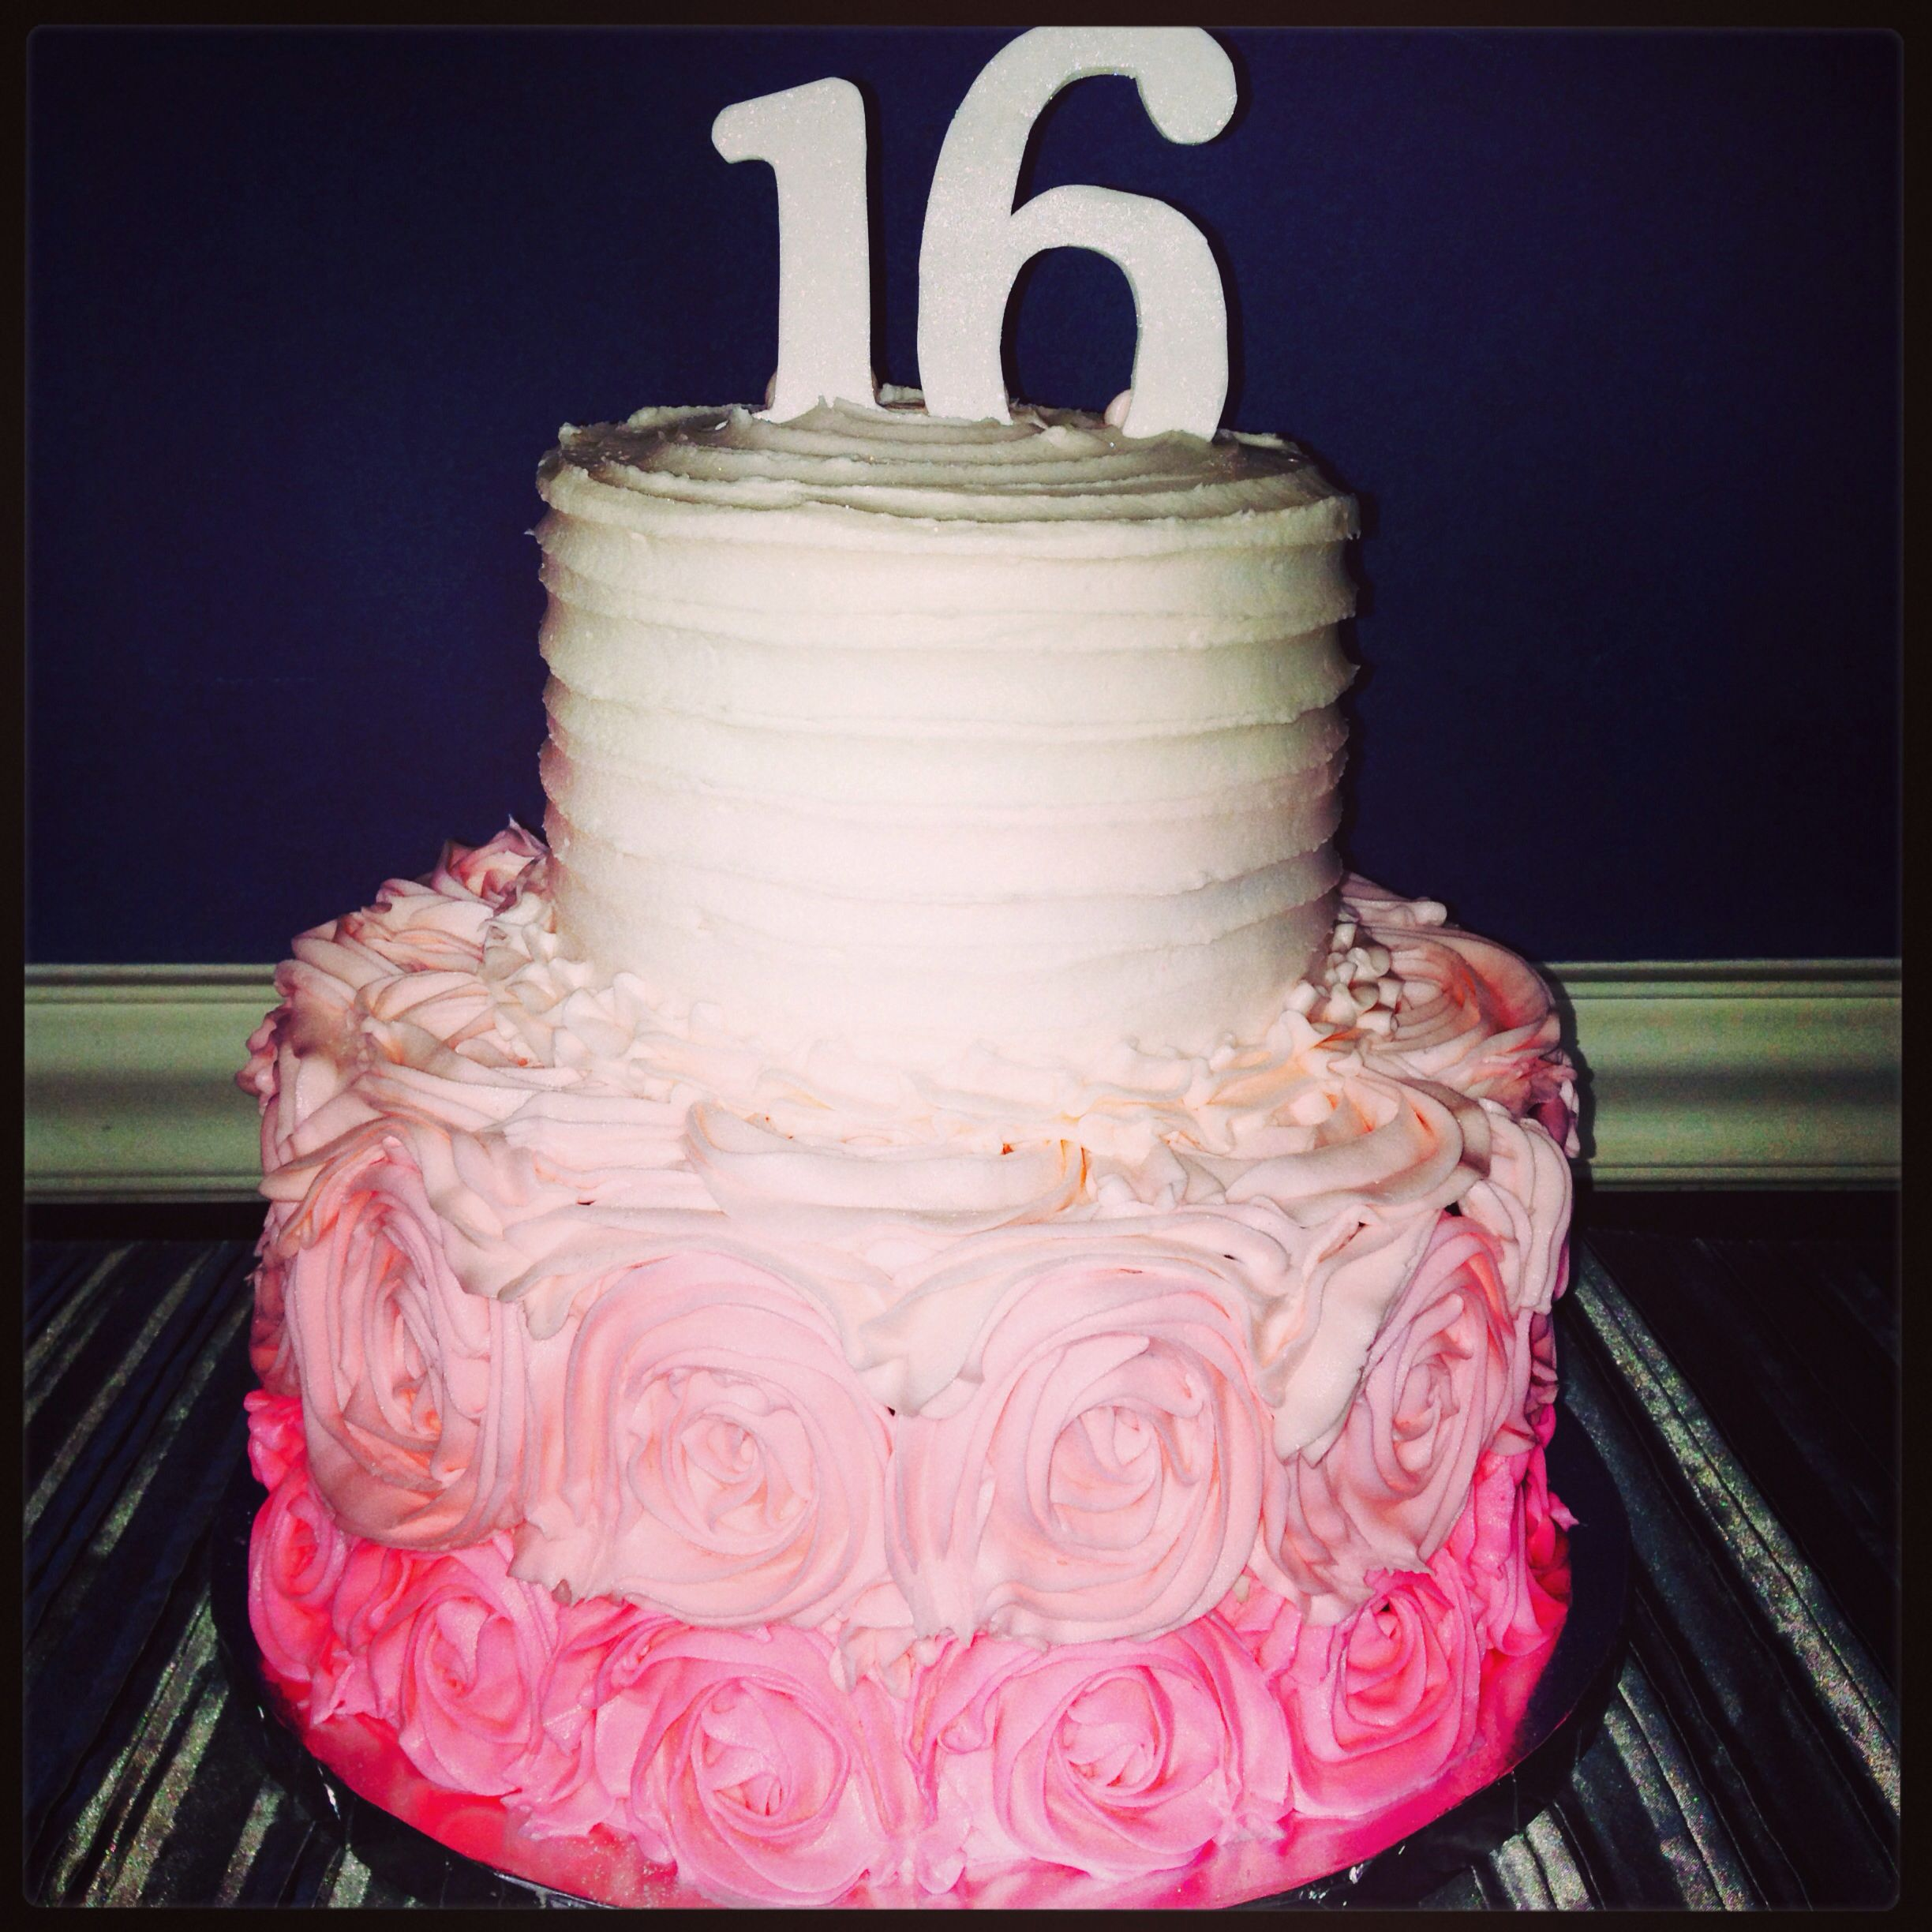 Cake Designs For Sweet Sixteen : Simple sweet 16 cake many cakes an cupcakes Pinterest